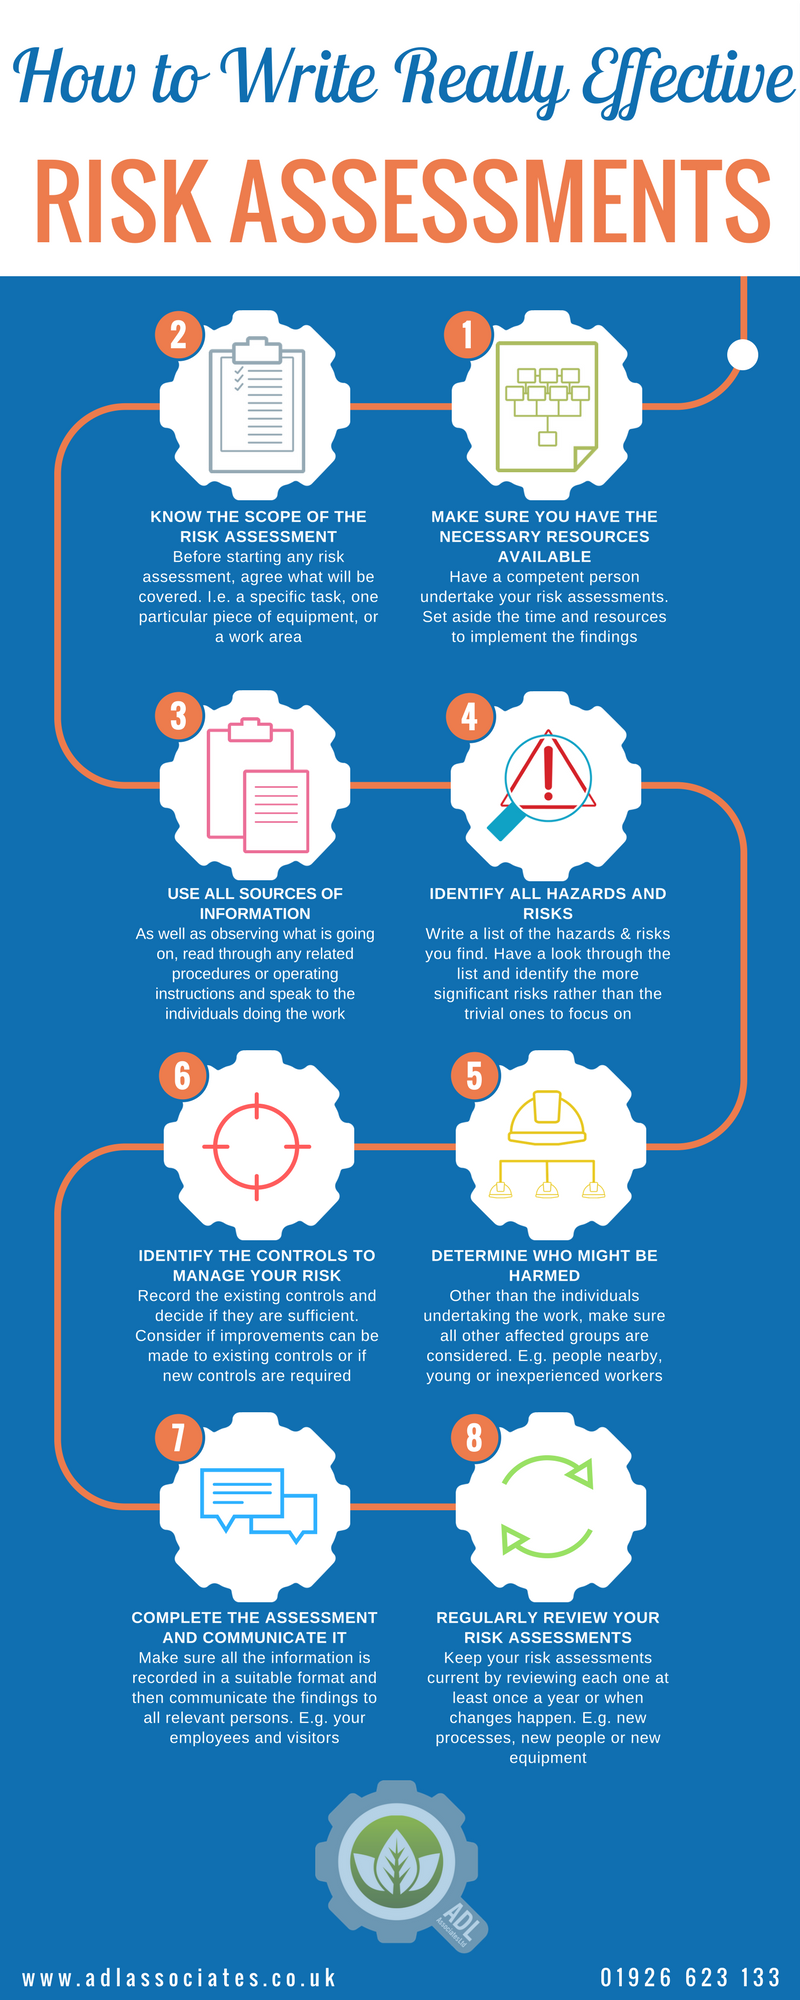 infographic - how to write really effective risk assessaments